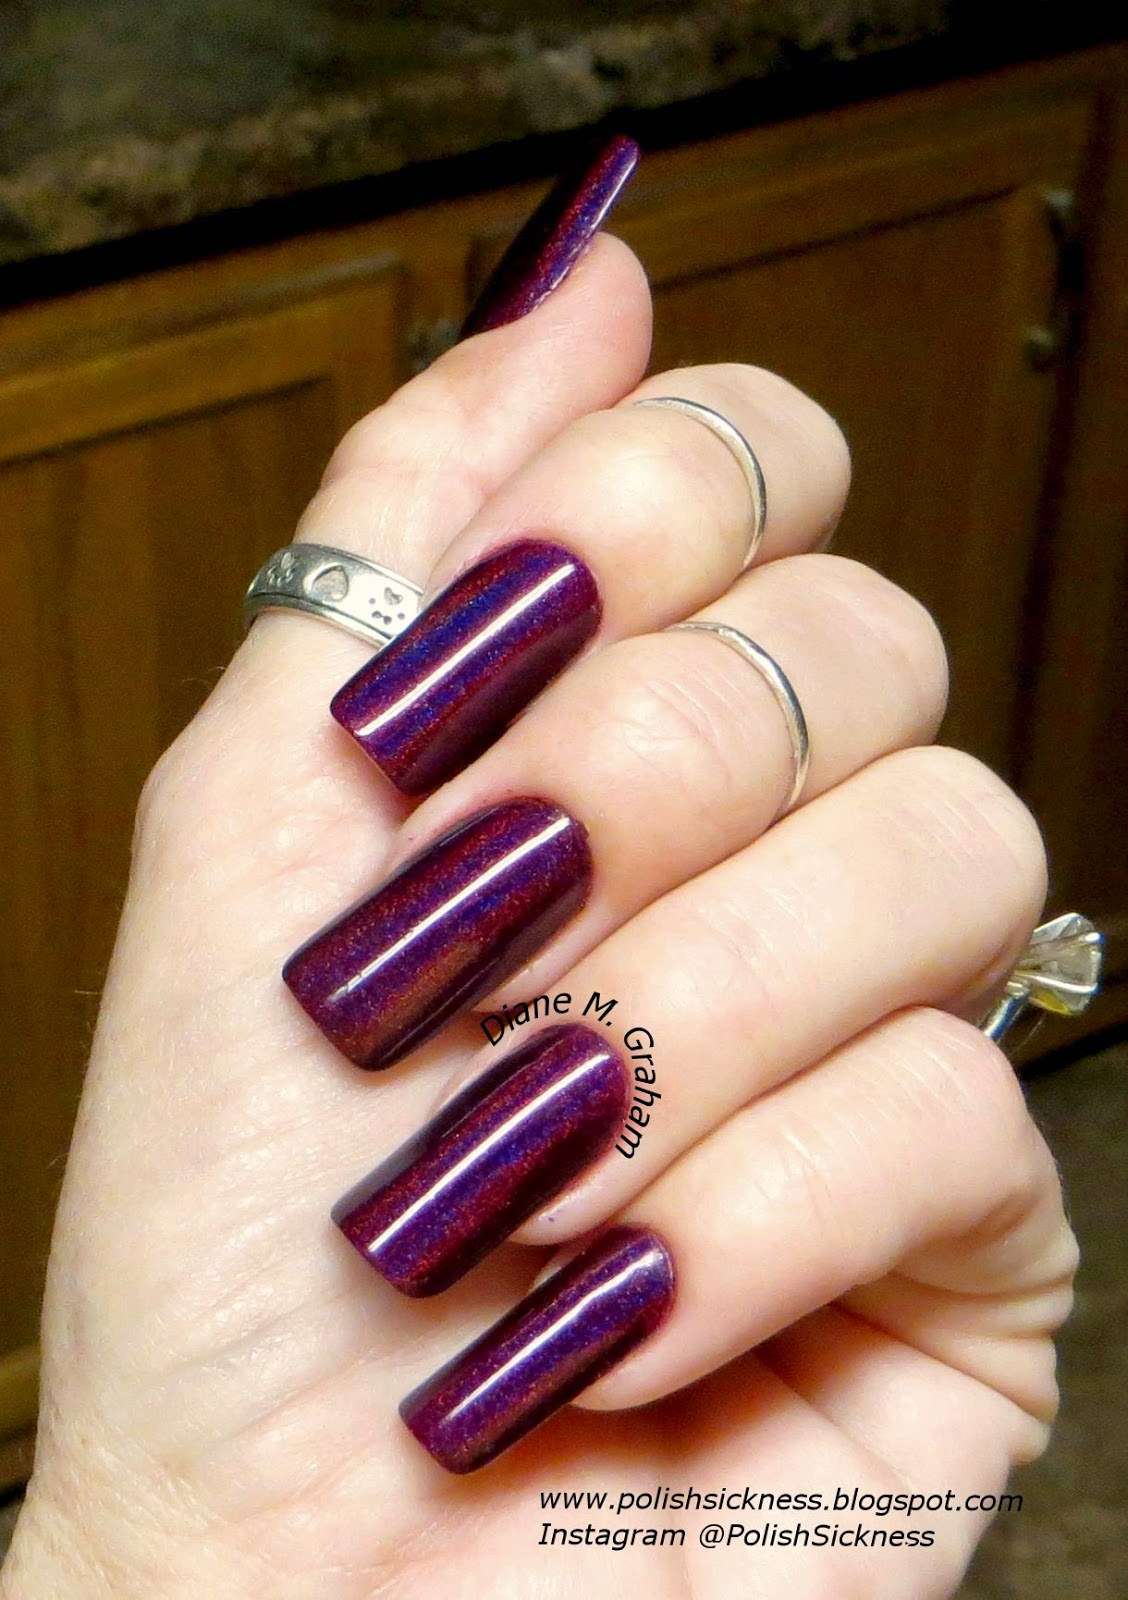 Darling Diva BEWBS!, Color Club Cosmic Fate, BM XL19 stamp